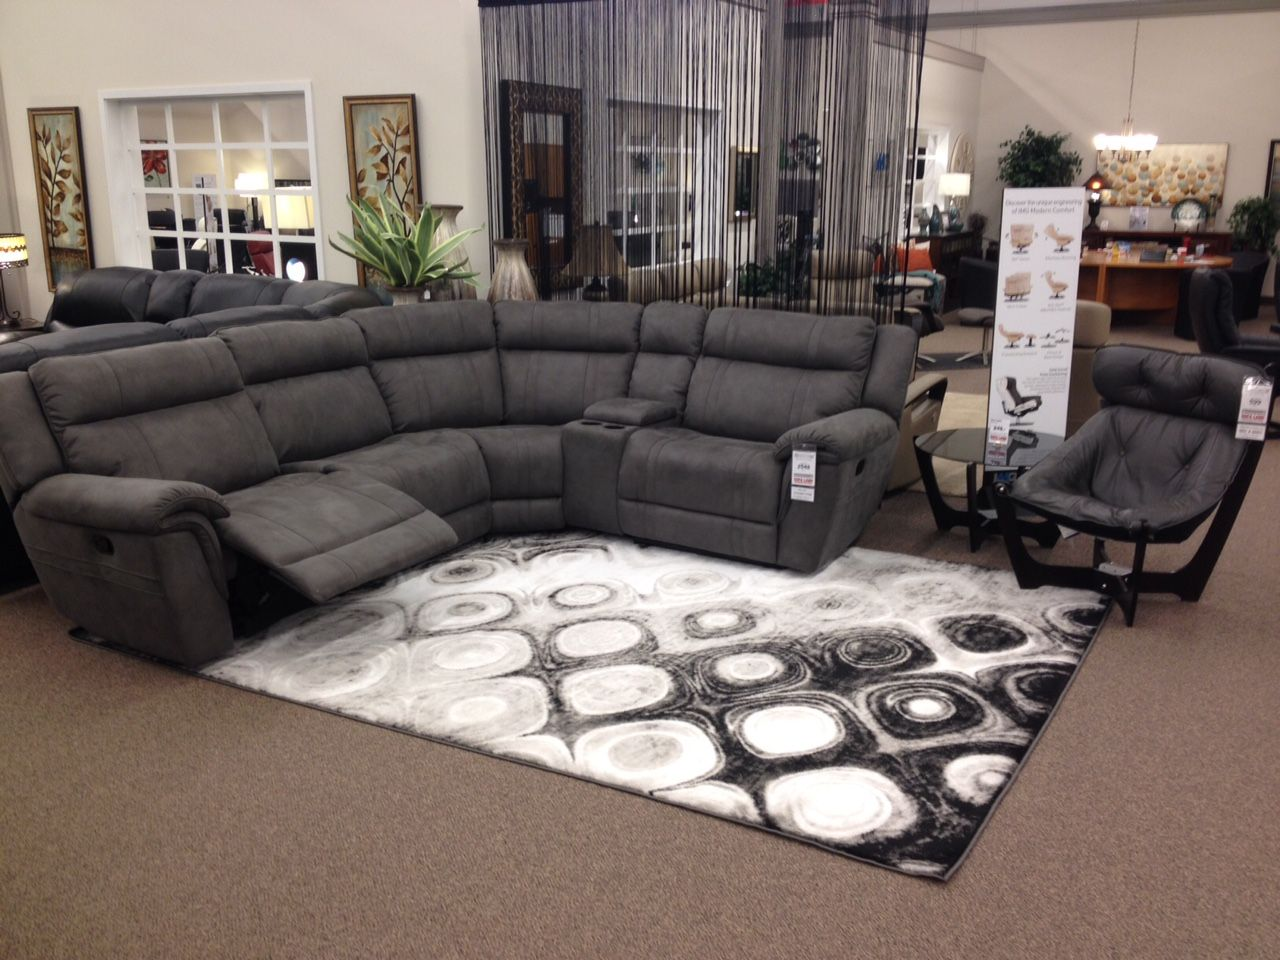 Ohhhh Soooo Cozy The Kohen Reclining Sectional Just Arrived In An Ultra Plush Fabric That Will Hug You Recliner Couch Reclining Sectional Living Room Decor